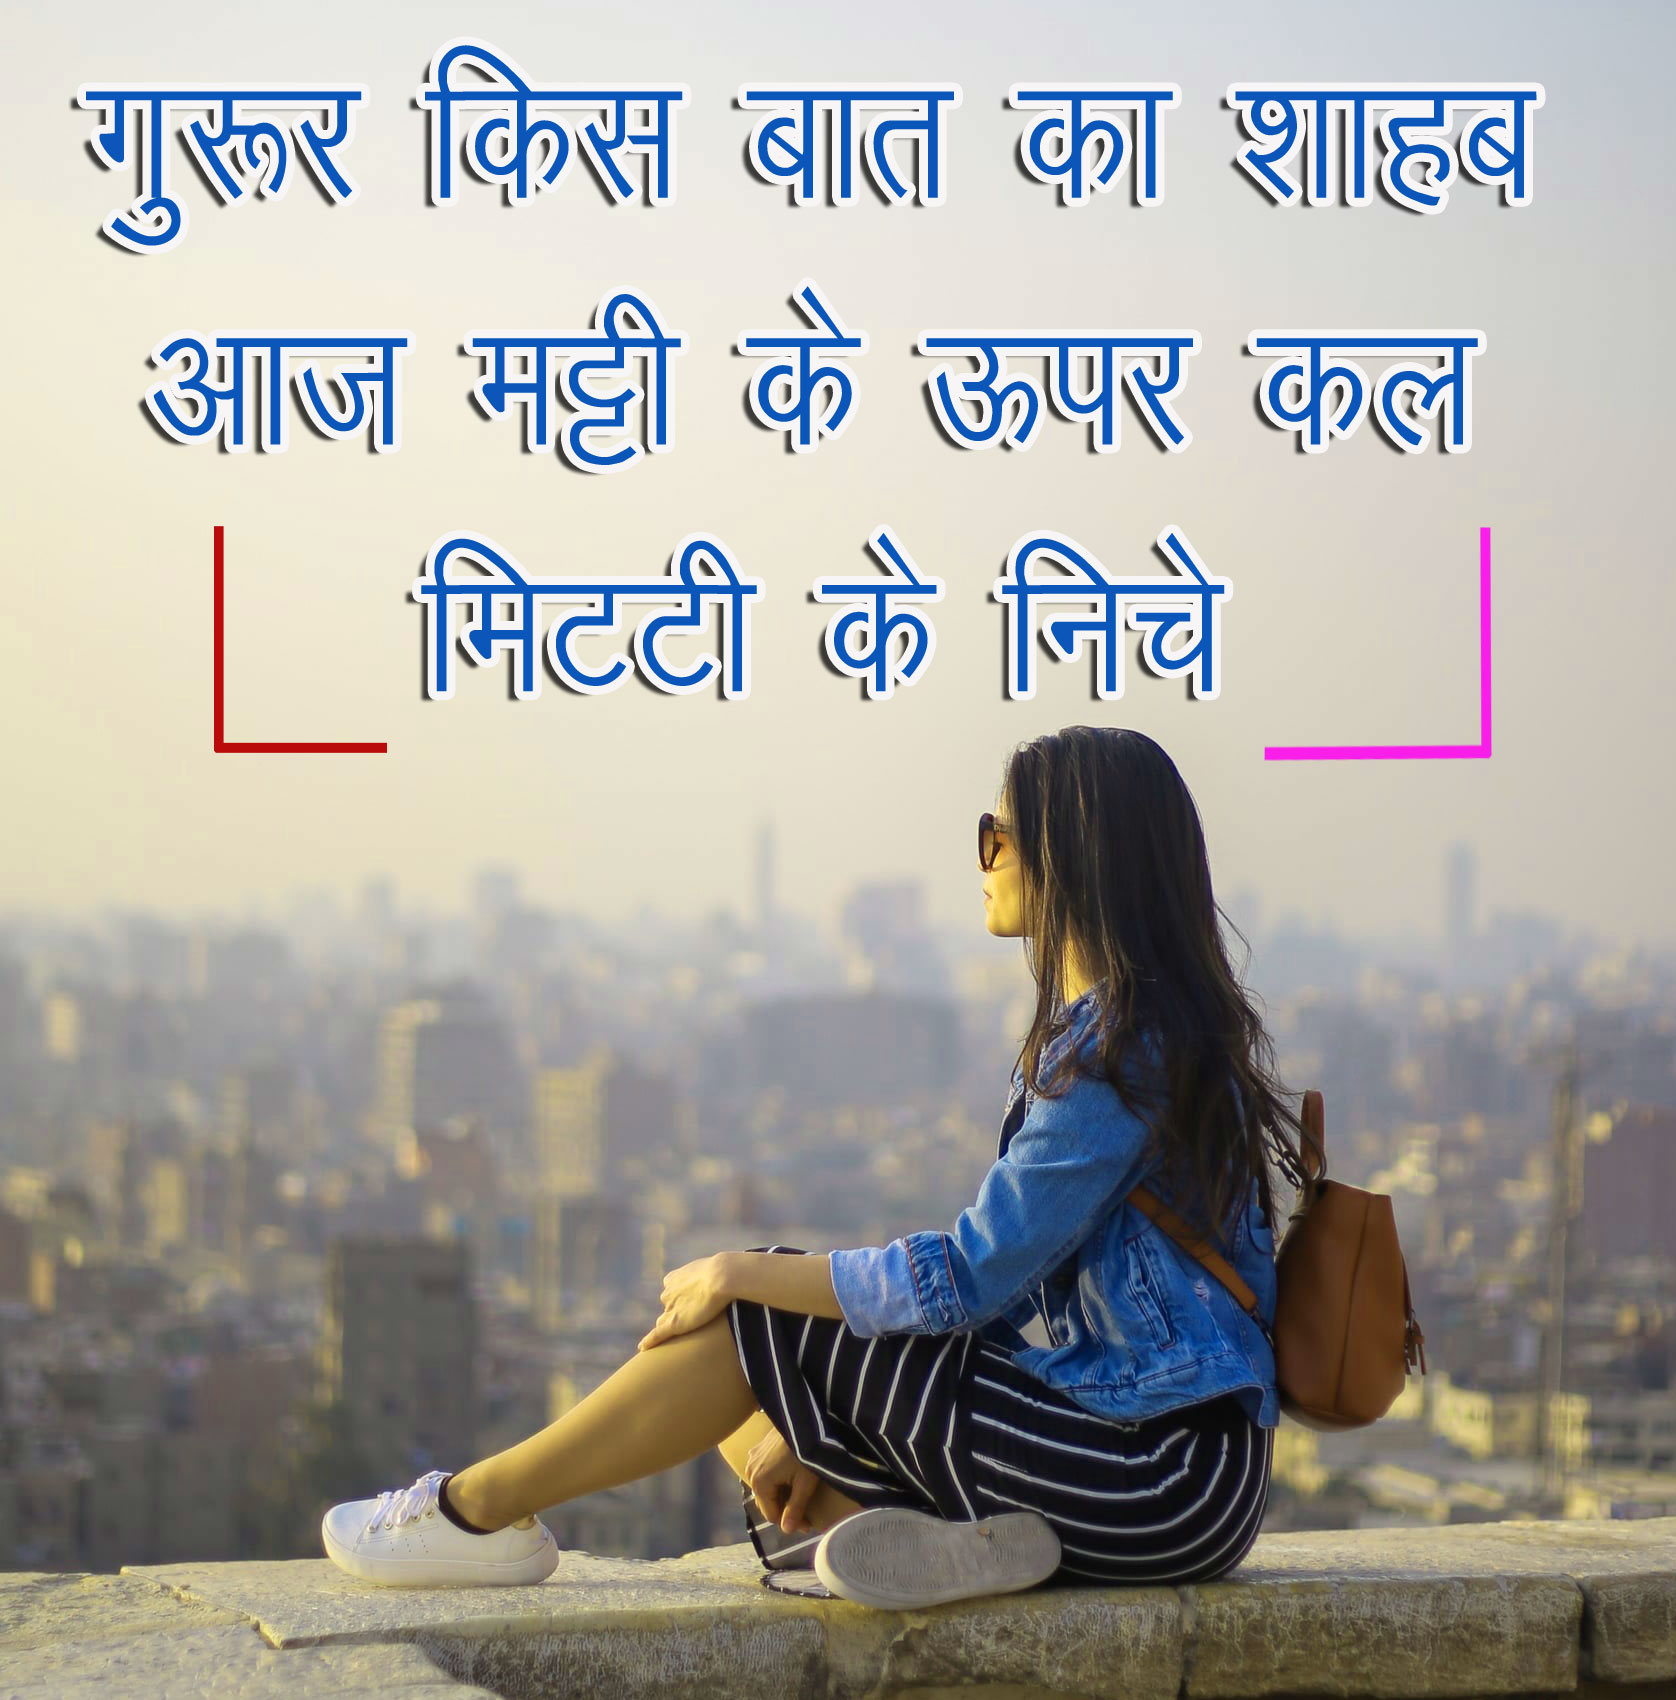 Life Quotes Whatsapp DP Images